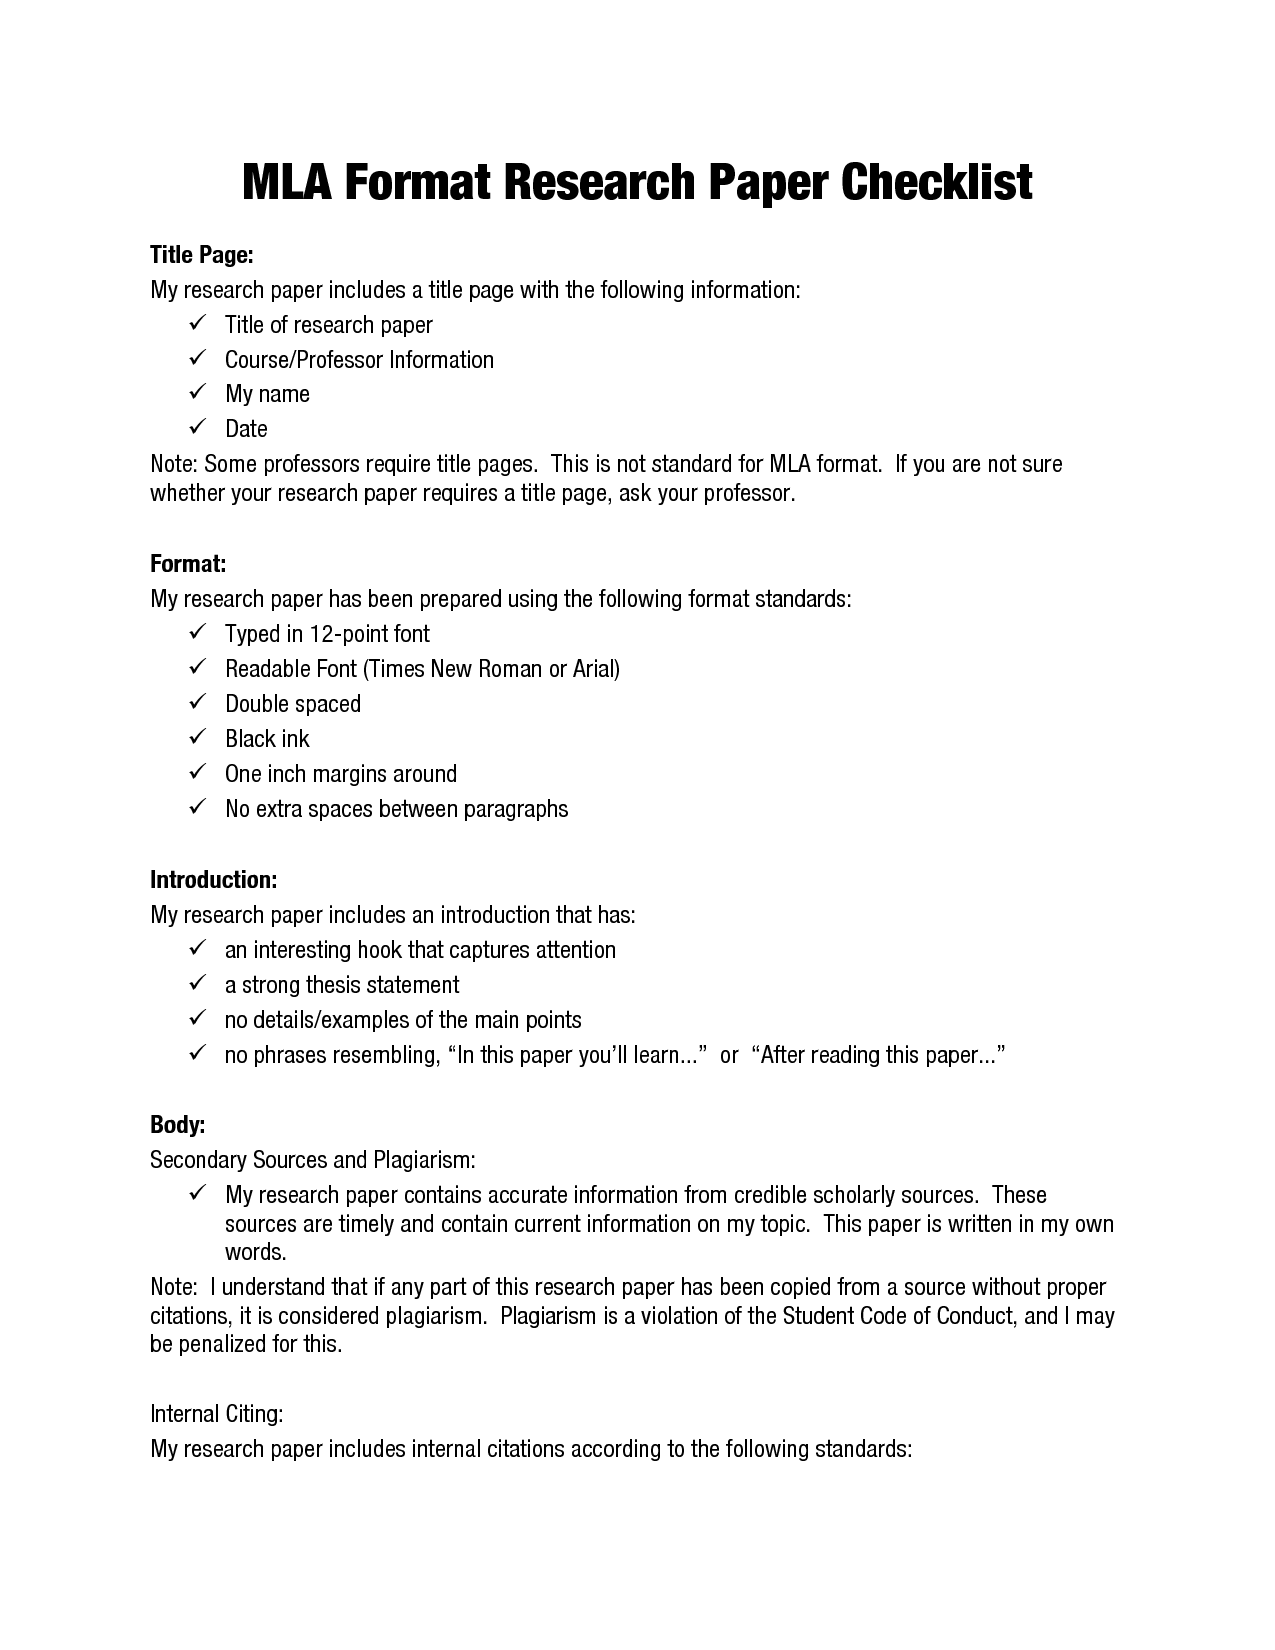 Superbe MLA Format Research Papers | MLA Format Research Paper Checklist